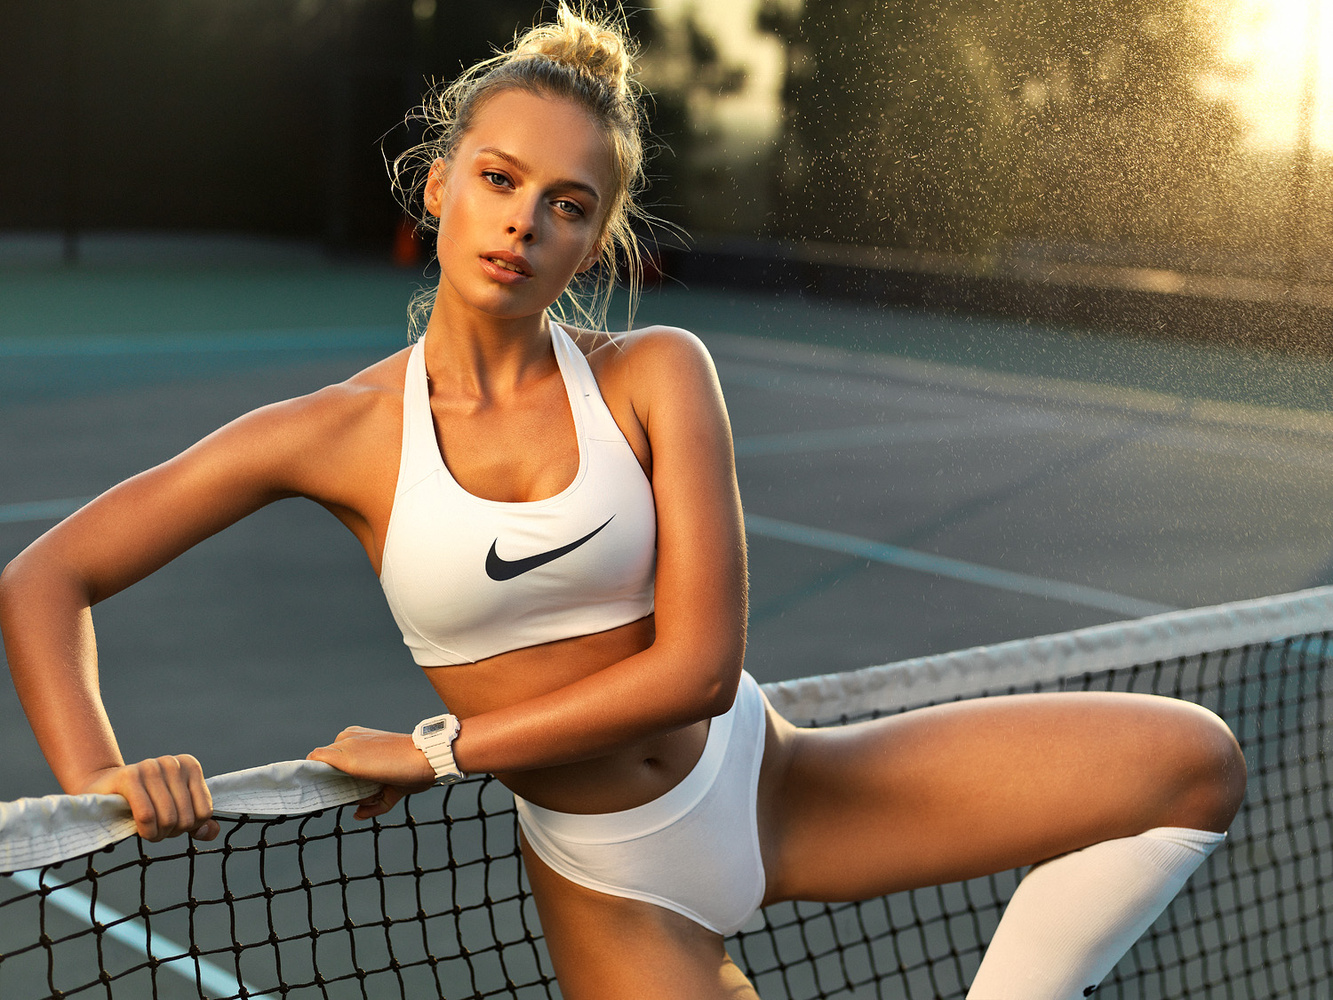 Let's play tennis by Dmitry Bocharov